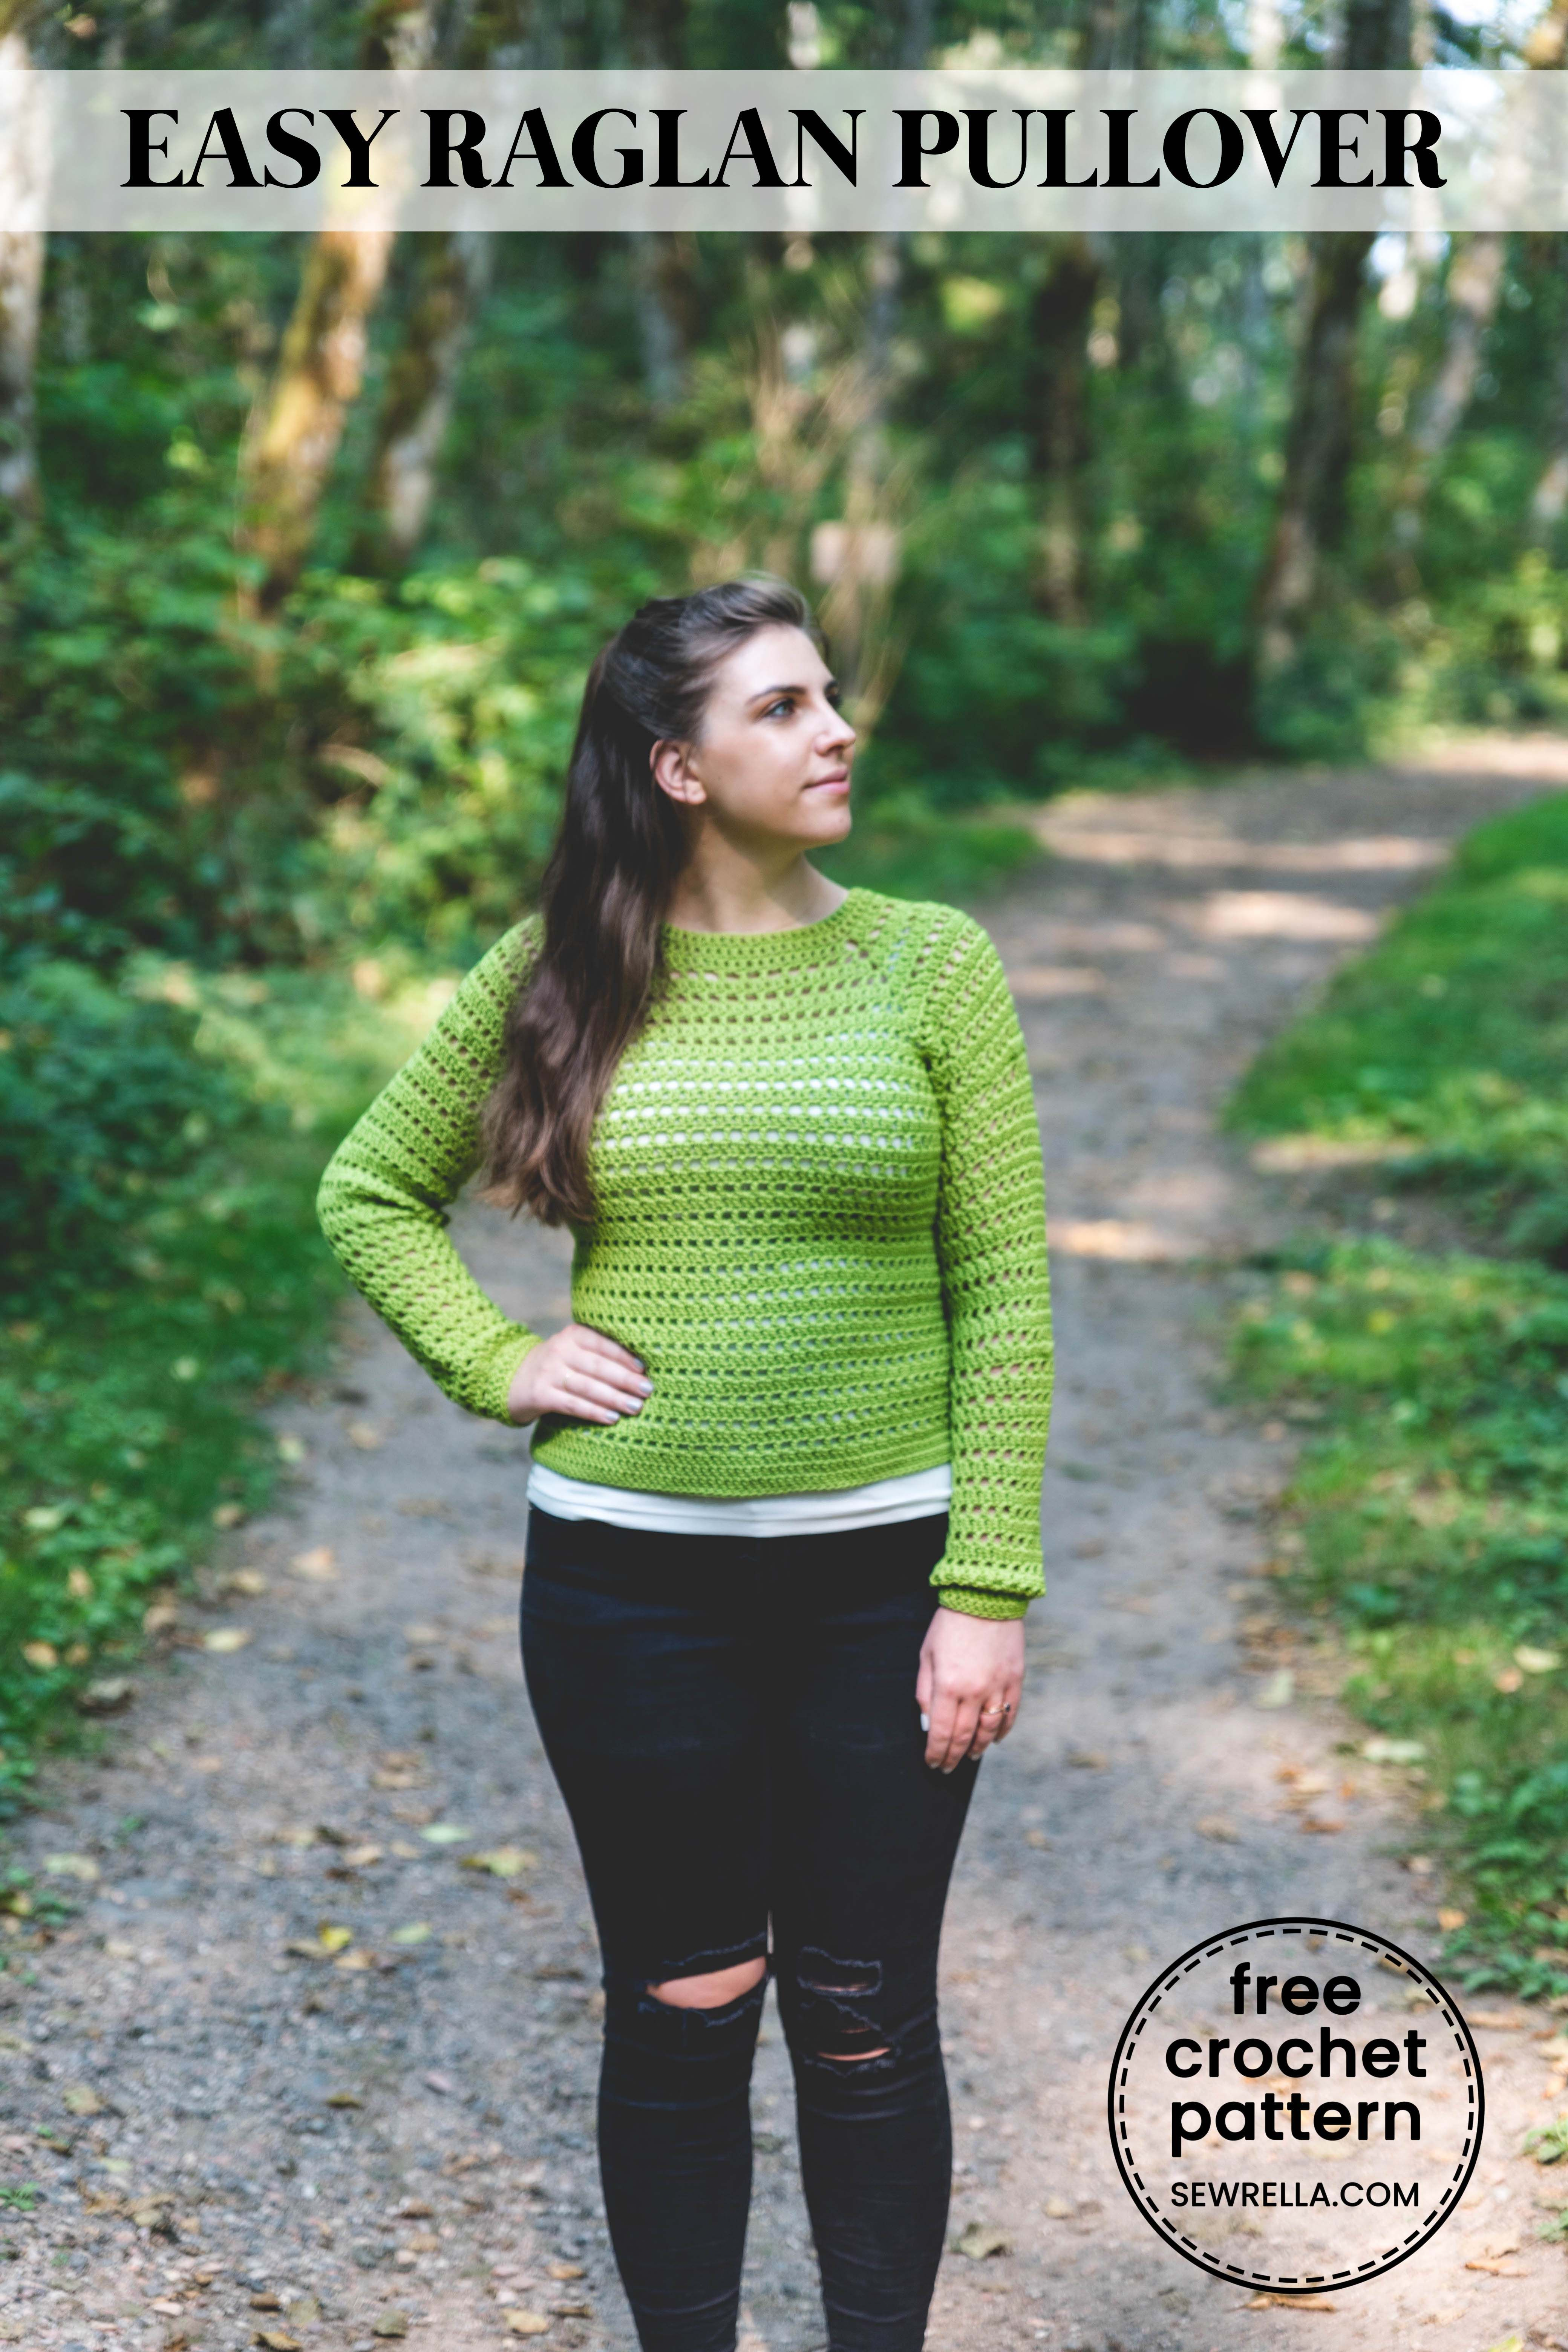 bf774708ffe19 Crochet this simple breezy sweater with raglan shoulder shaping and easy  double crochets. Sizes XS-3XL are included in the free pattern  freepattern  ...